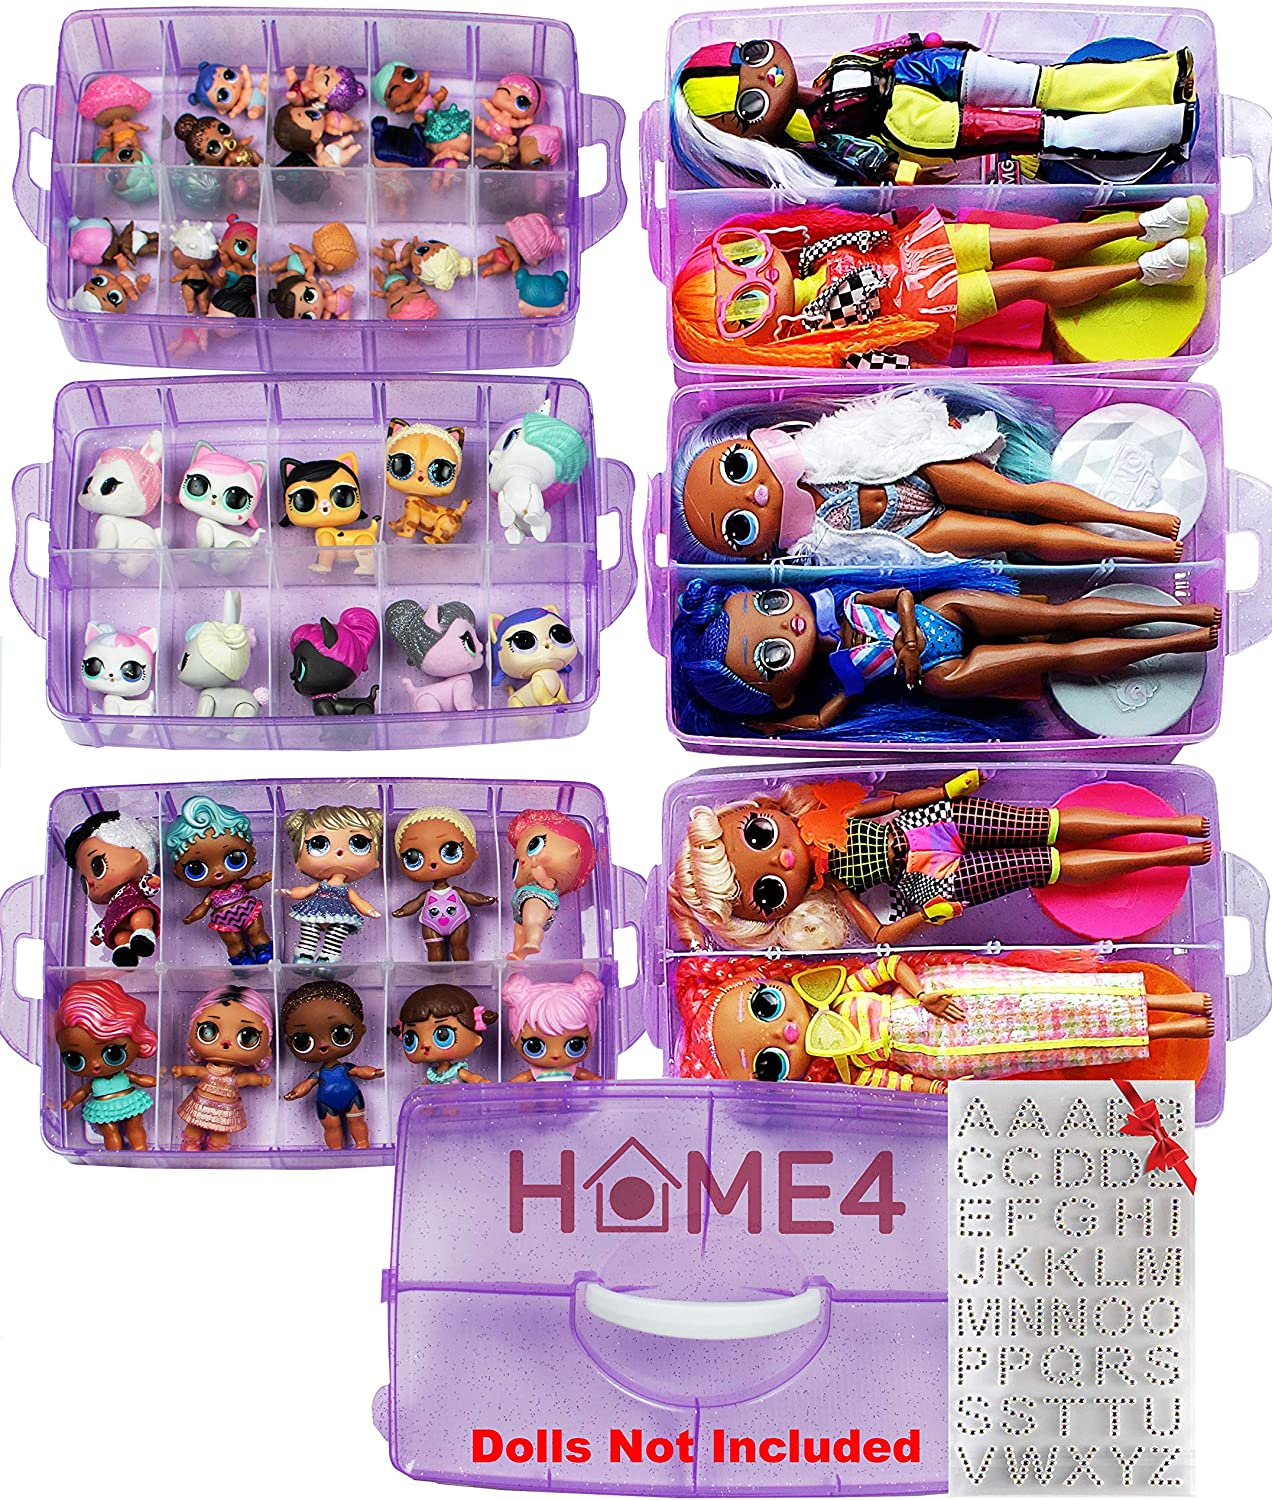 HOME4 No BPA 60 Adjustable Compartments 6 Layers Stackable Storage Container Organizer Carrying Display Case, Compatible with Small Toys LOL, Shopkins, OMG (Dolls Not Included) (Purple)